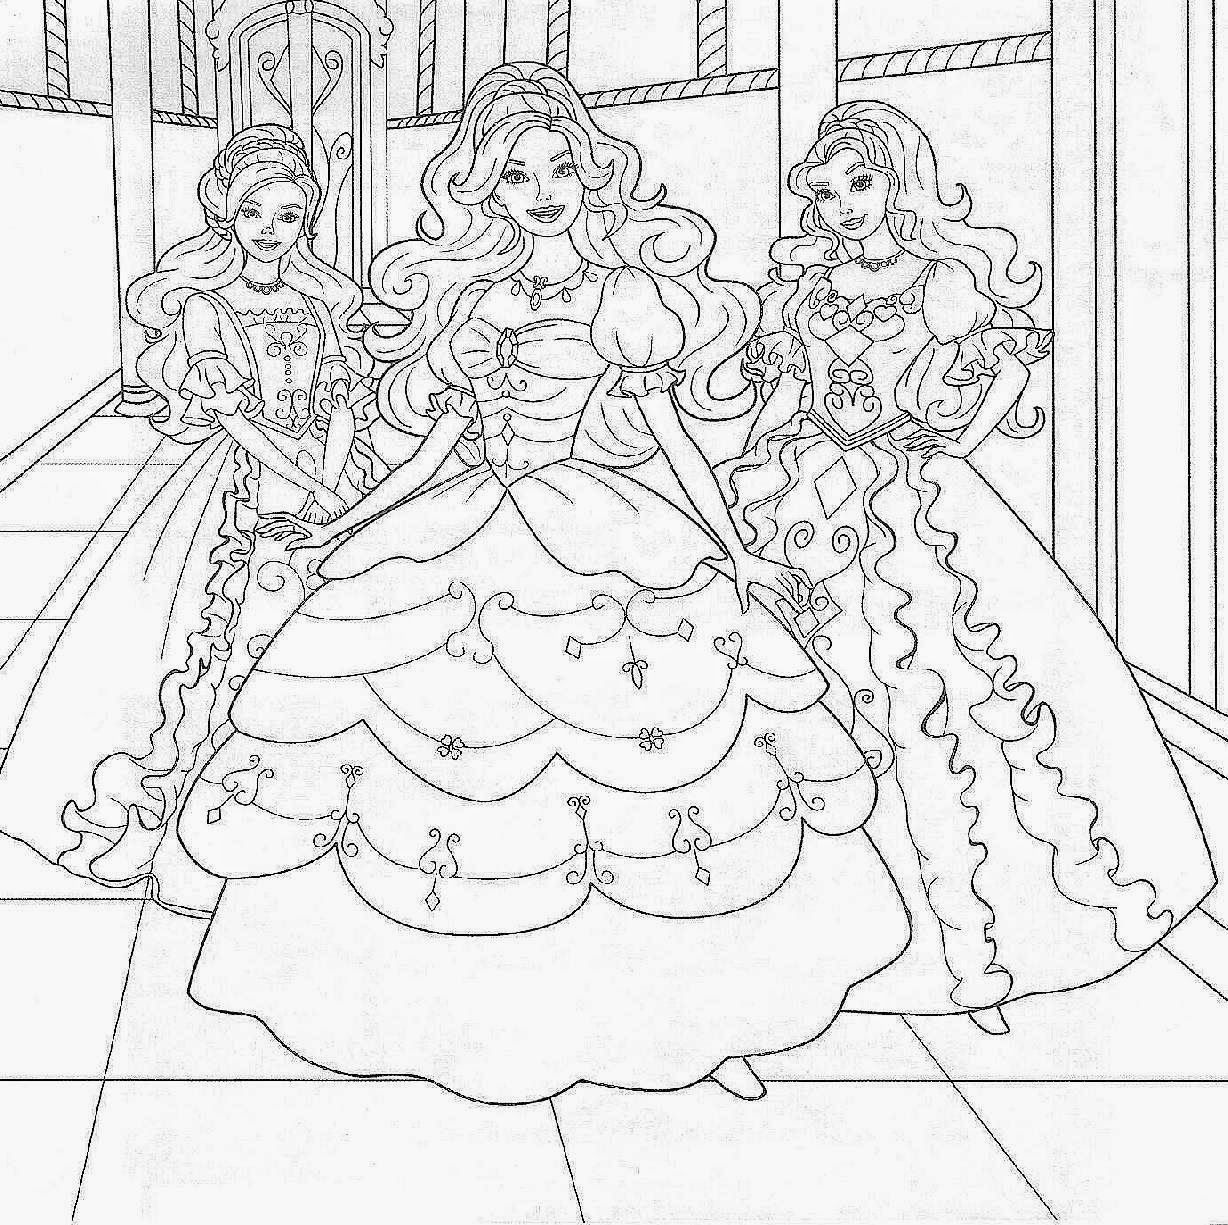 barbie princess coloring book barbie princess coloring pages com coloring pages book princess barbie coloring